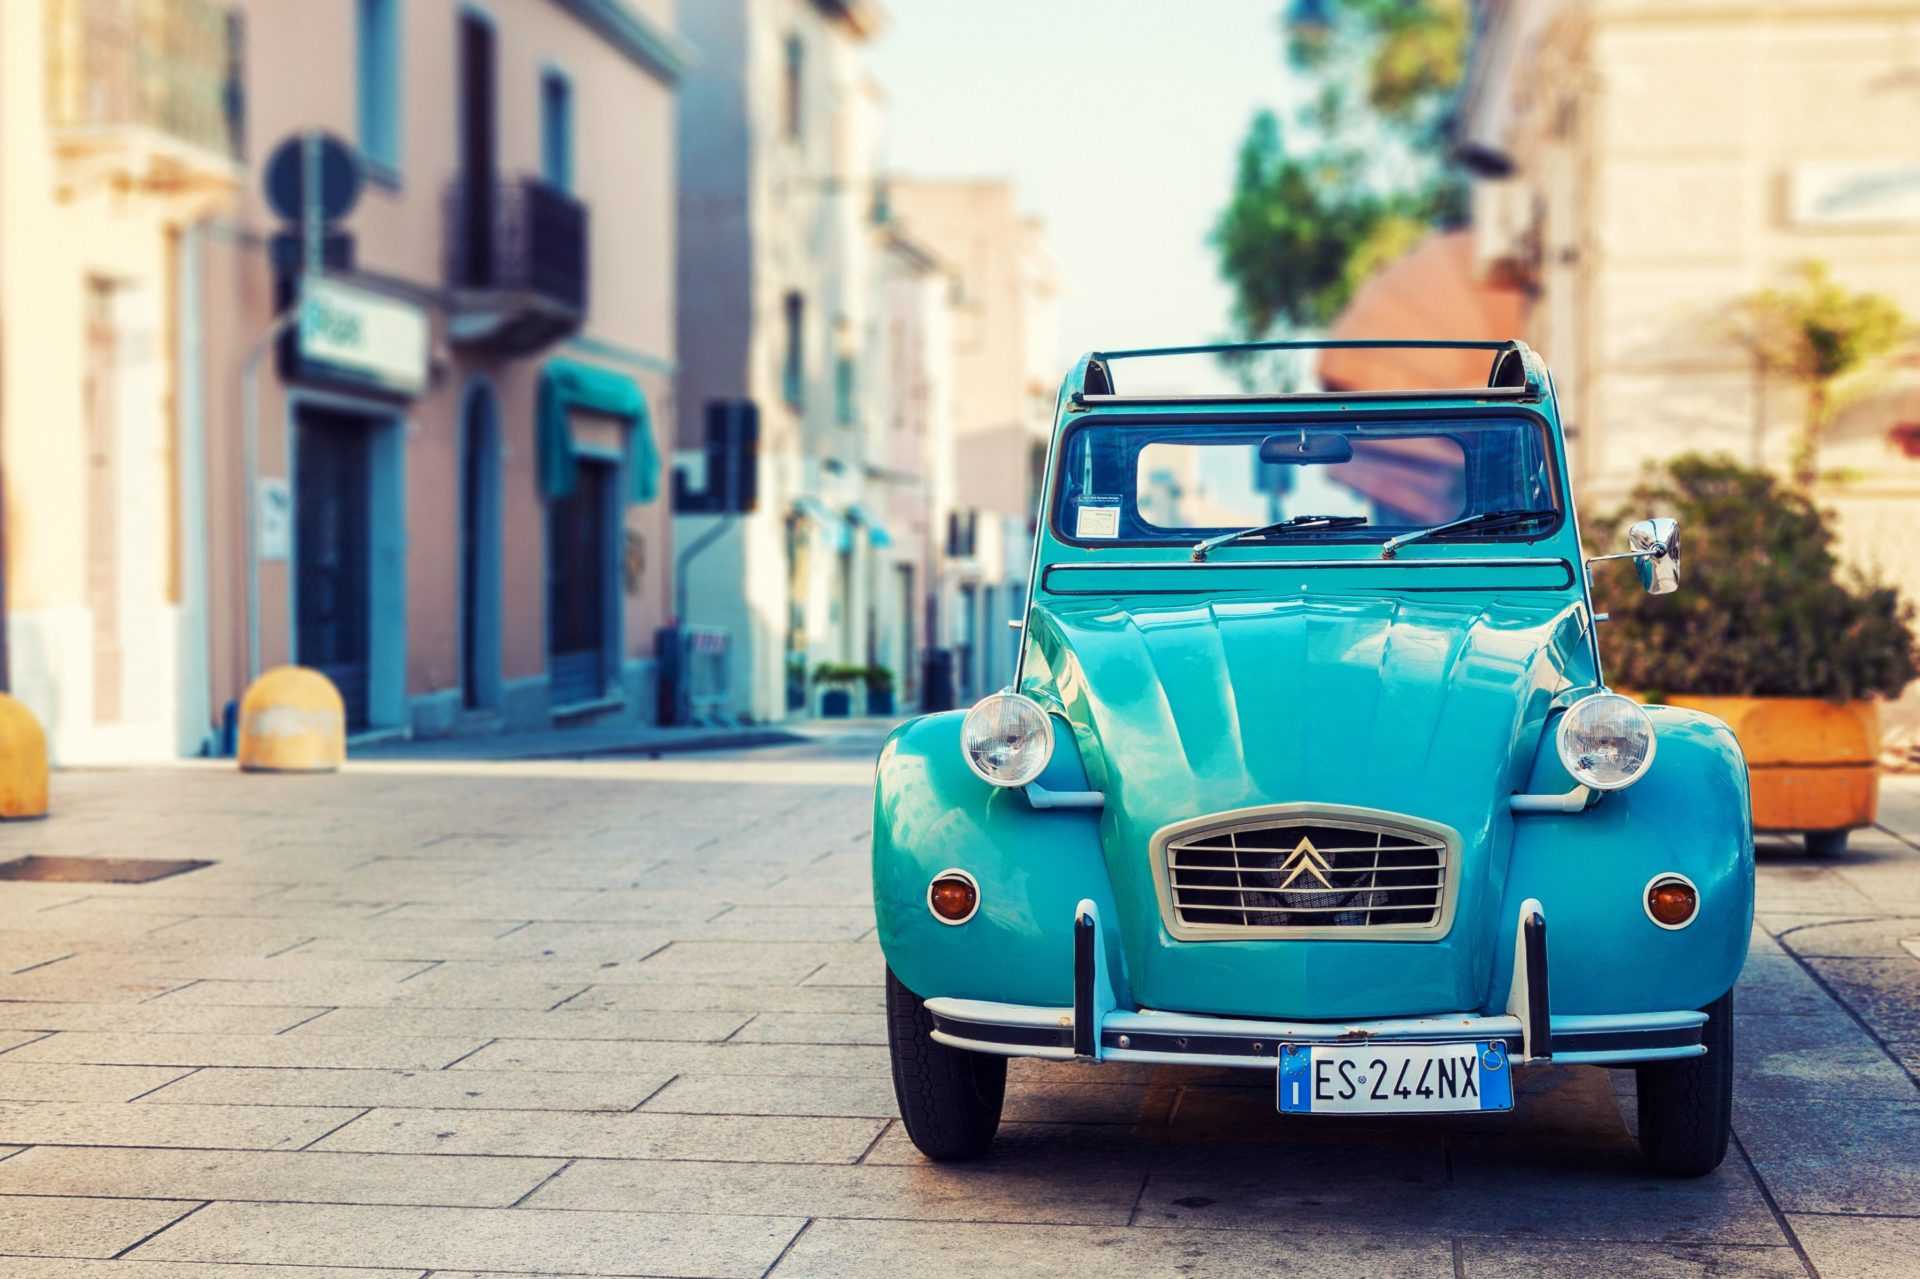 Registering and owning a car in Italy (and driving it!)